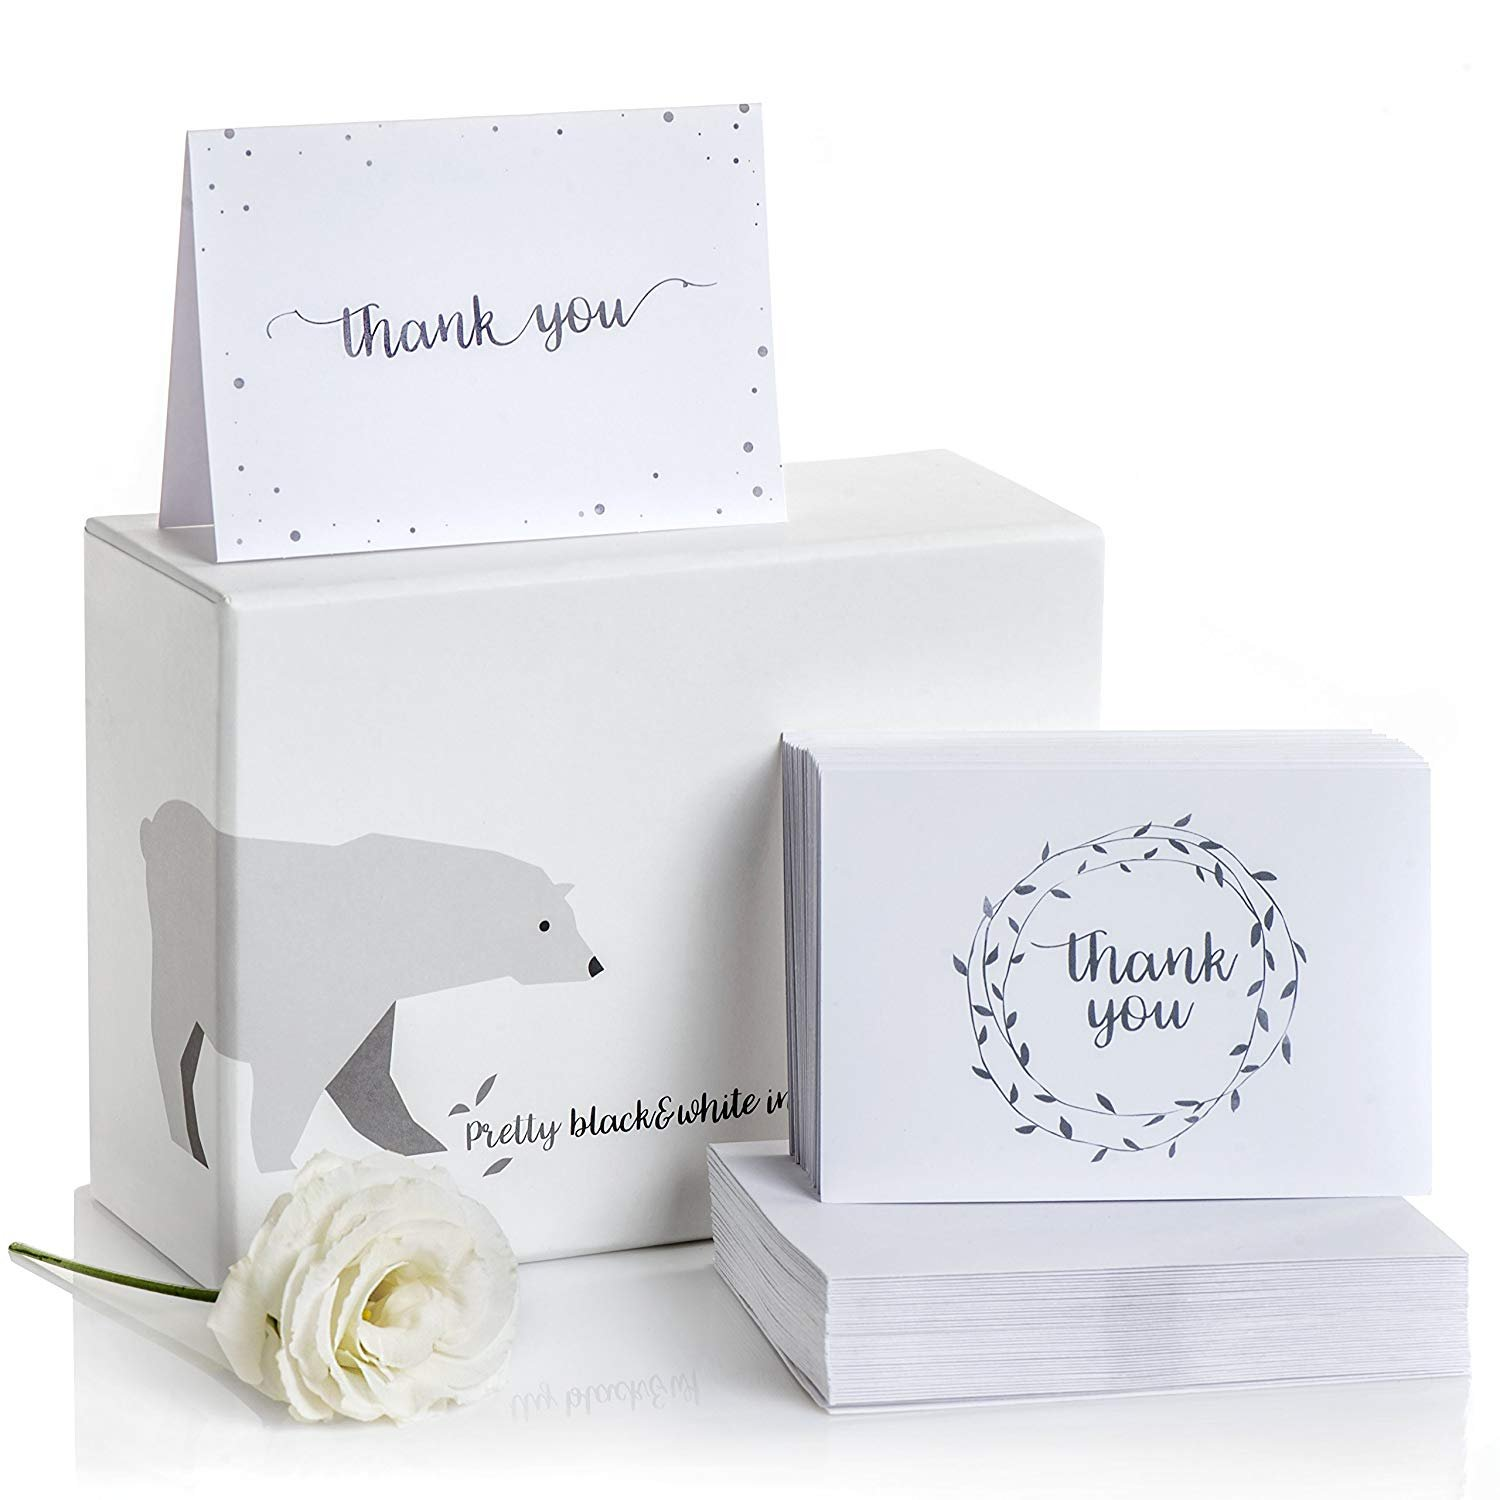 Thank You Cards Set of 100 – 2 Designs of Blank Thank You Notes and Self-Seal Envelopes – Stationary Set to Give Thanks for Wedding, Bridal Shower, Funeral, Professional, Any Occasion by Alice & Ben